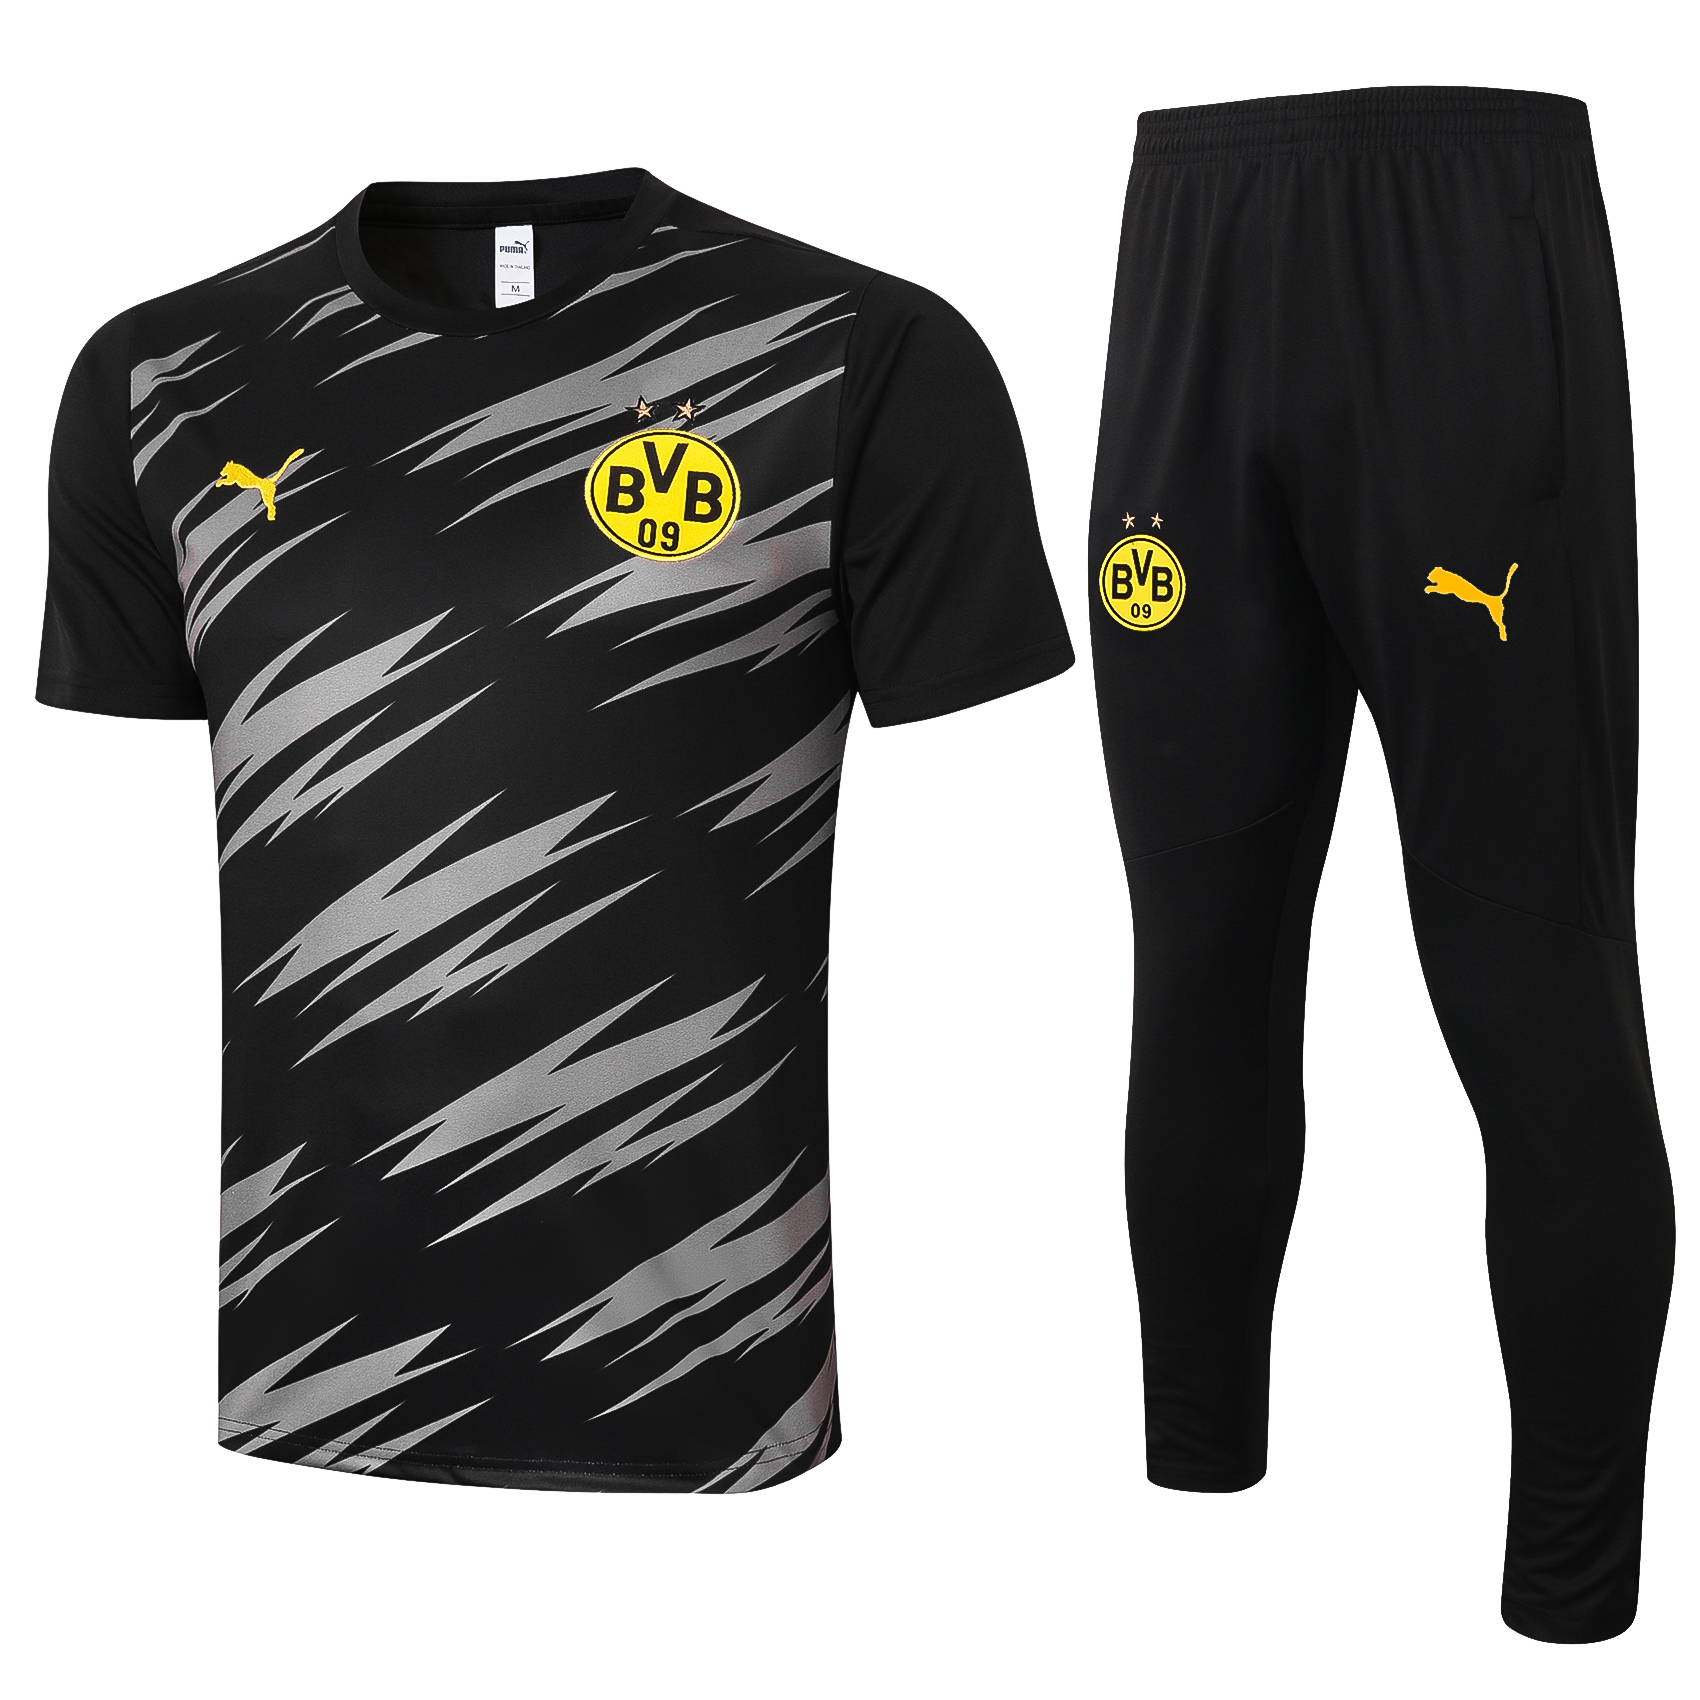 20-21-dortmund-black-training-set-442.jpg